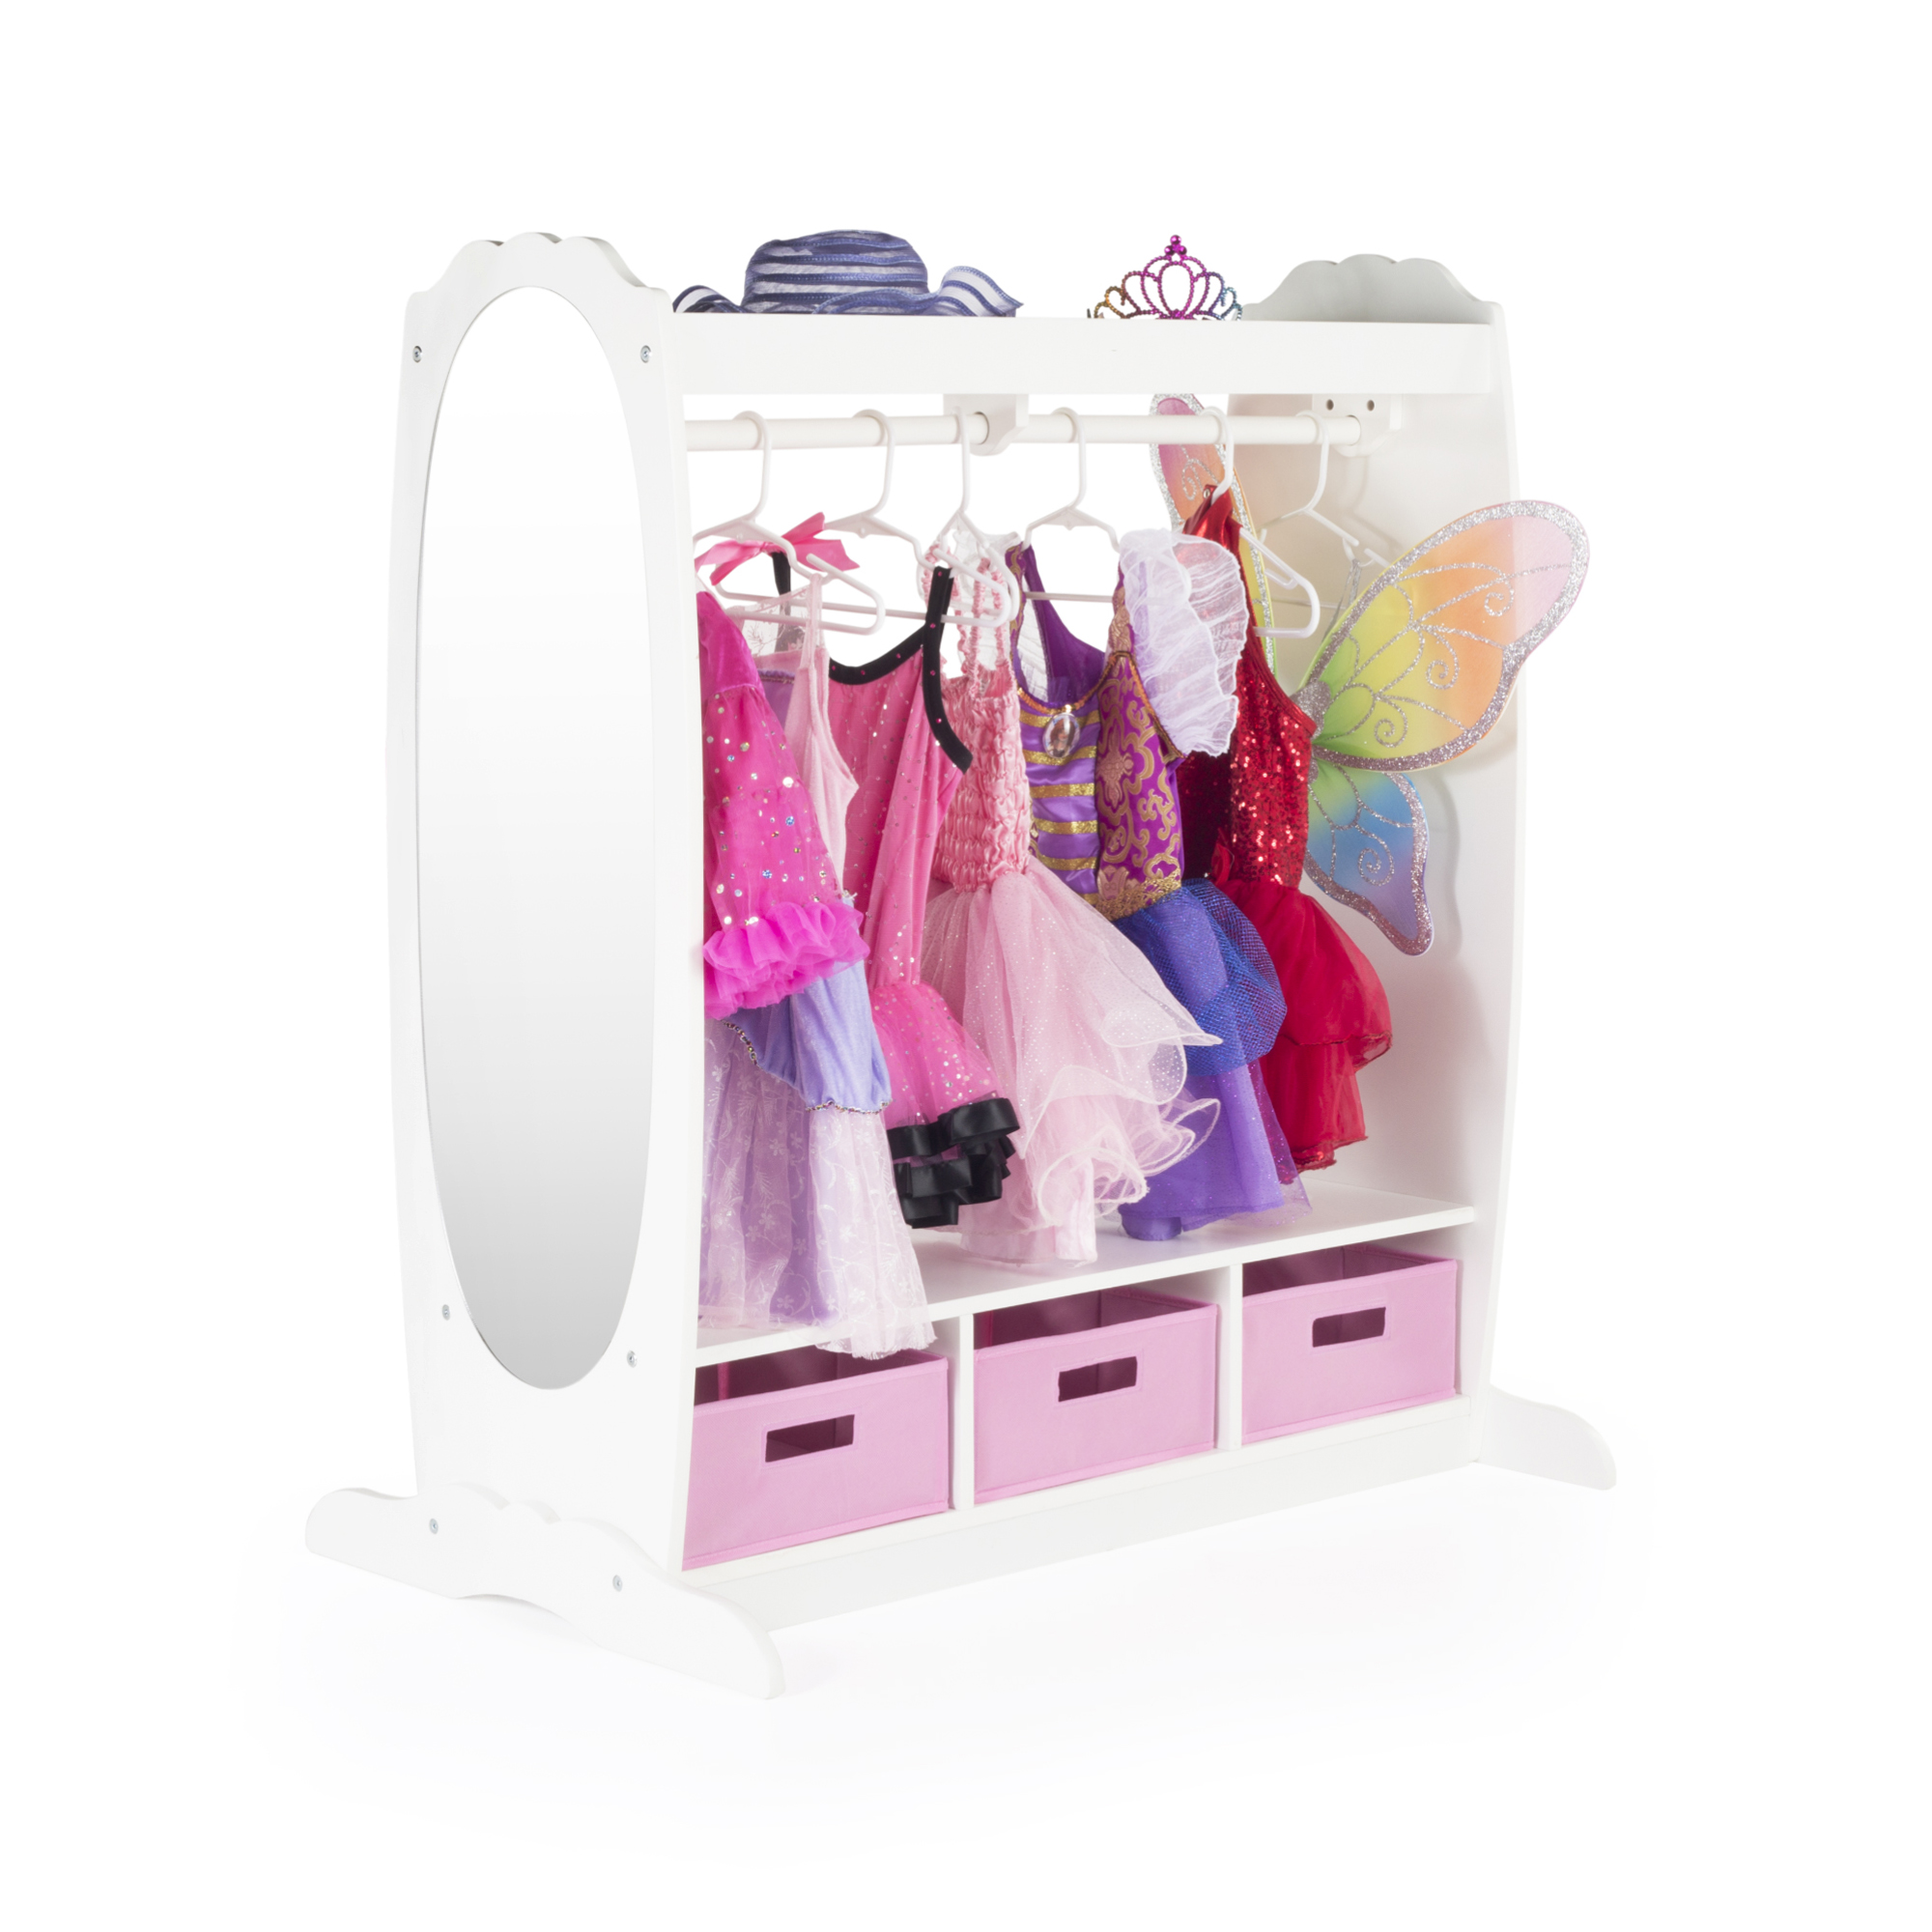 Dress Up Storage Center   White